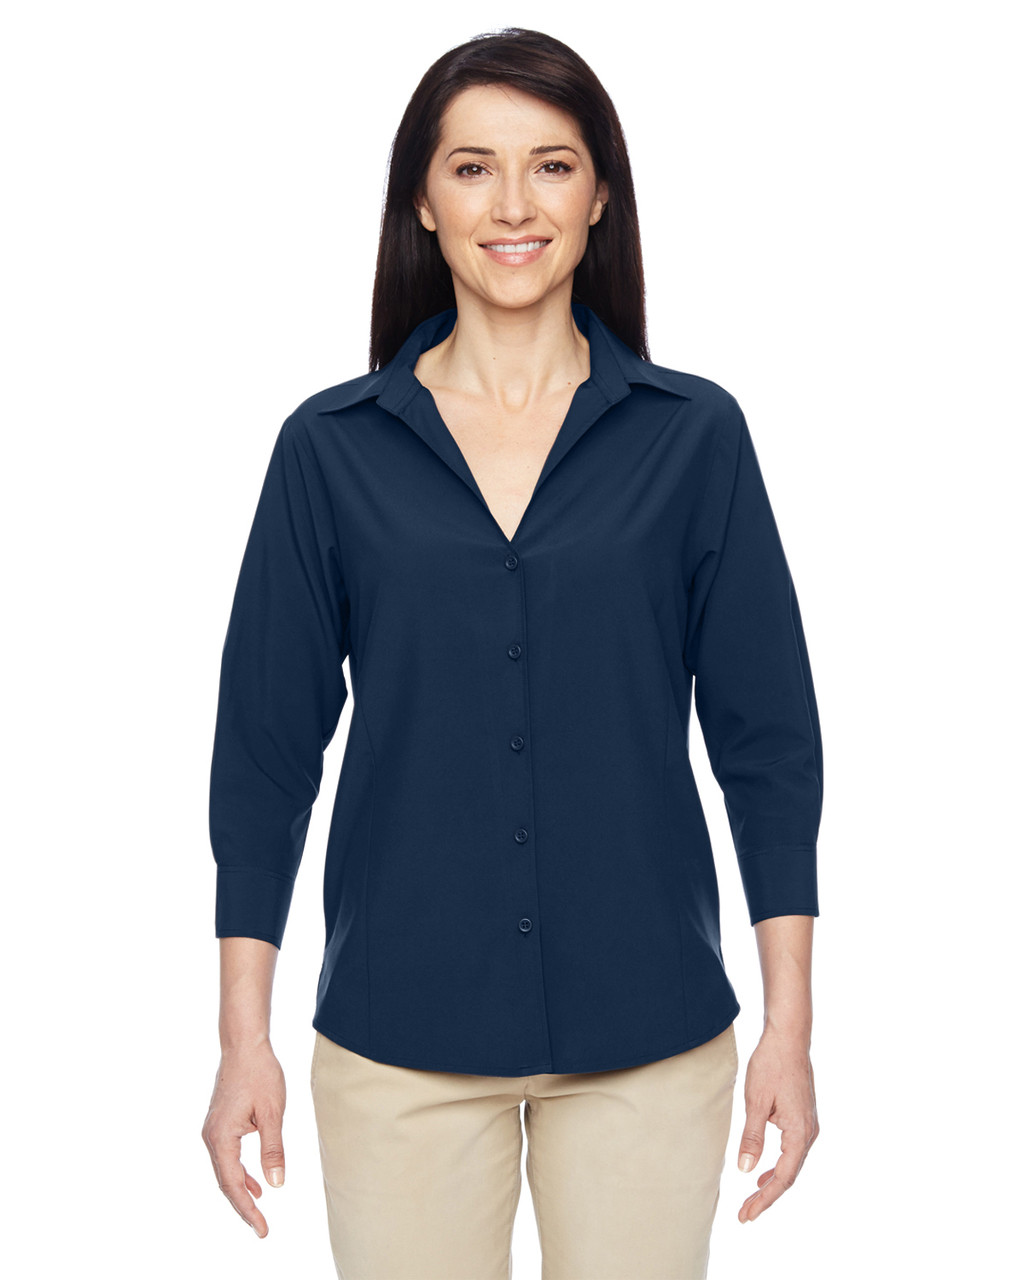 Navy - M610W Harriton Ladies' Paradise Three-Quarter Sleeve Performance Shirt | BlankClothing.ca